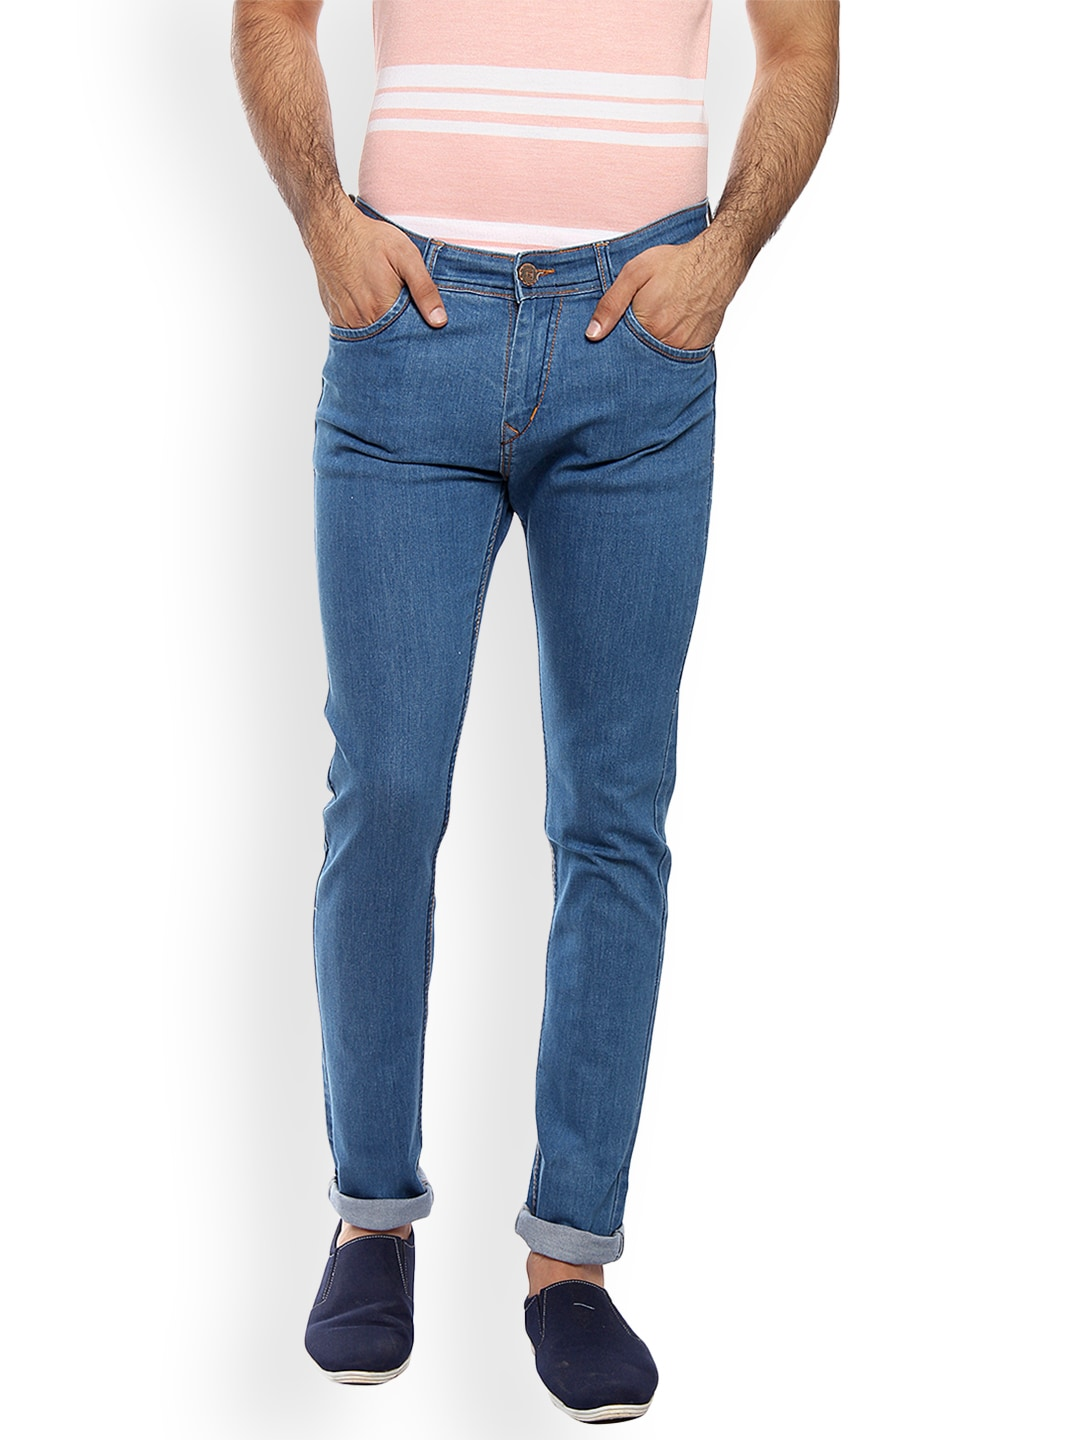 FEVER Men Blue Slim Fit Mid-Rise Clean Look Stretchable Jeans image